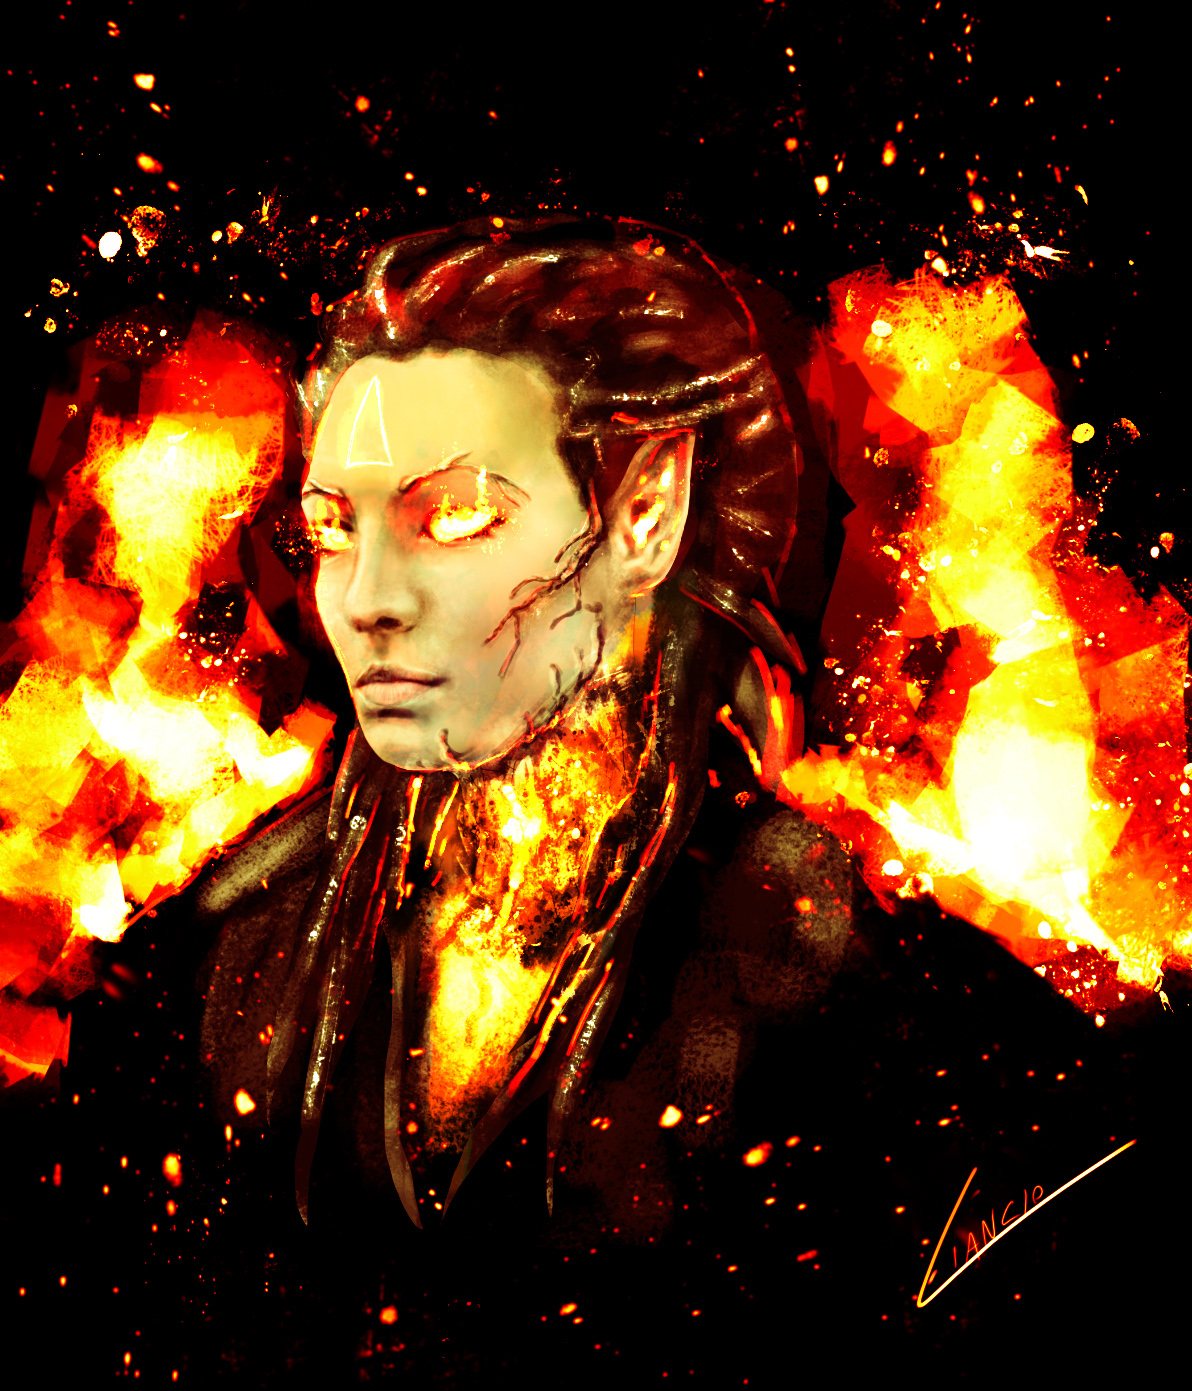 Avatar of Flame Gea